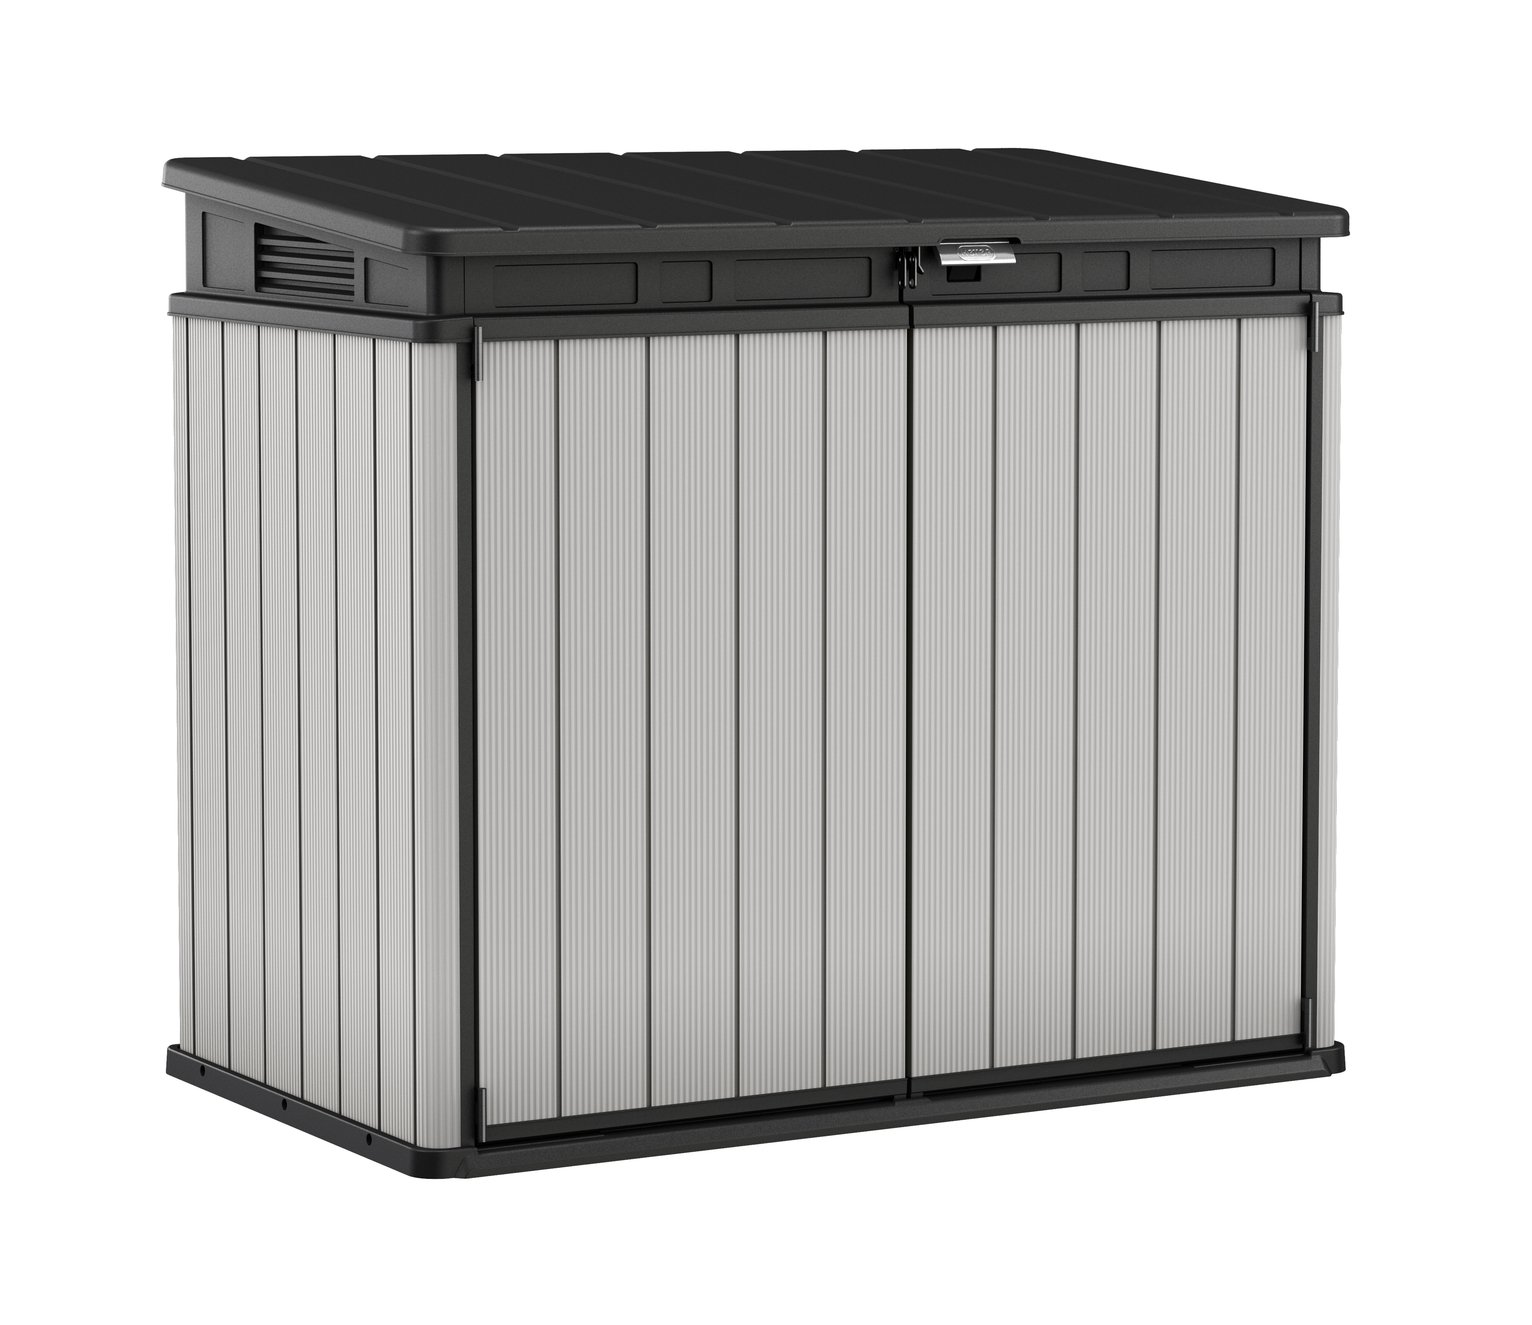 Keter Store It Out Premier XL Storage Shed 1150L - Grey